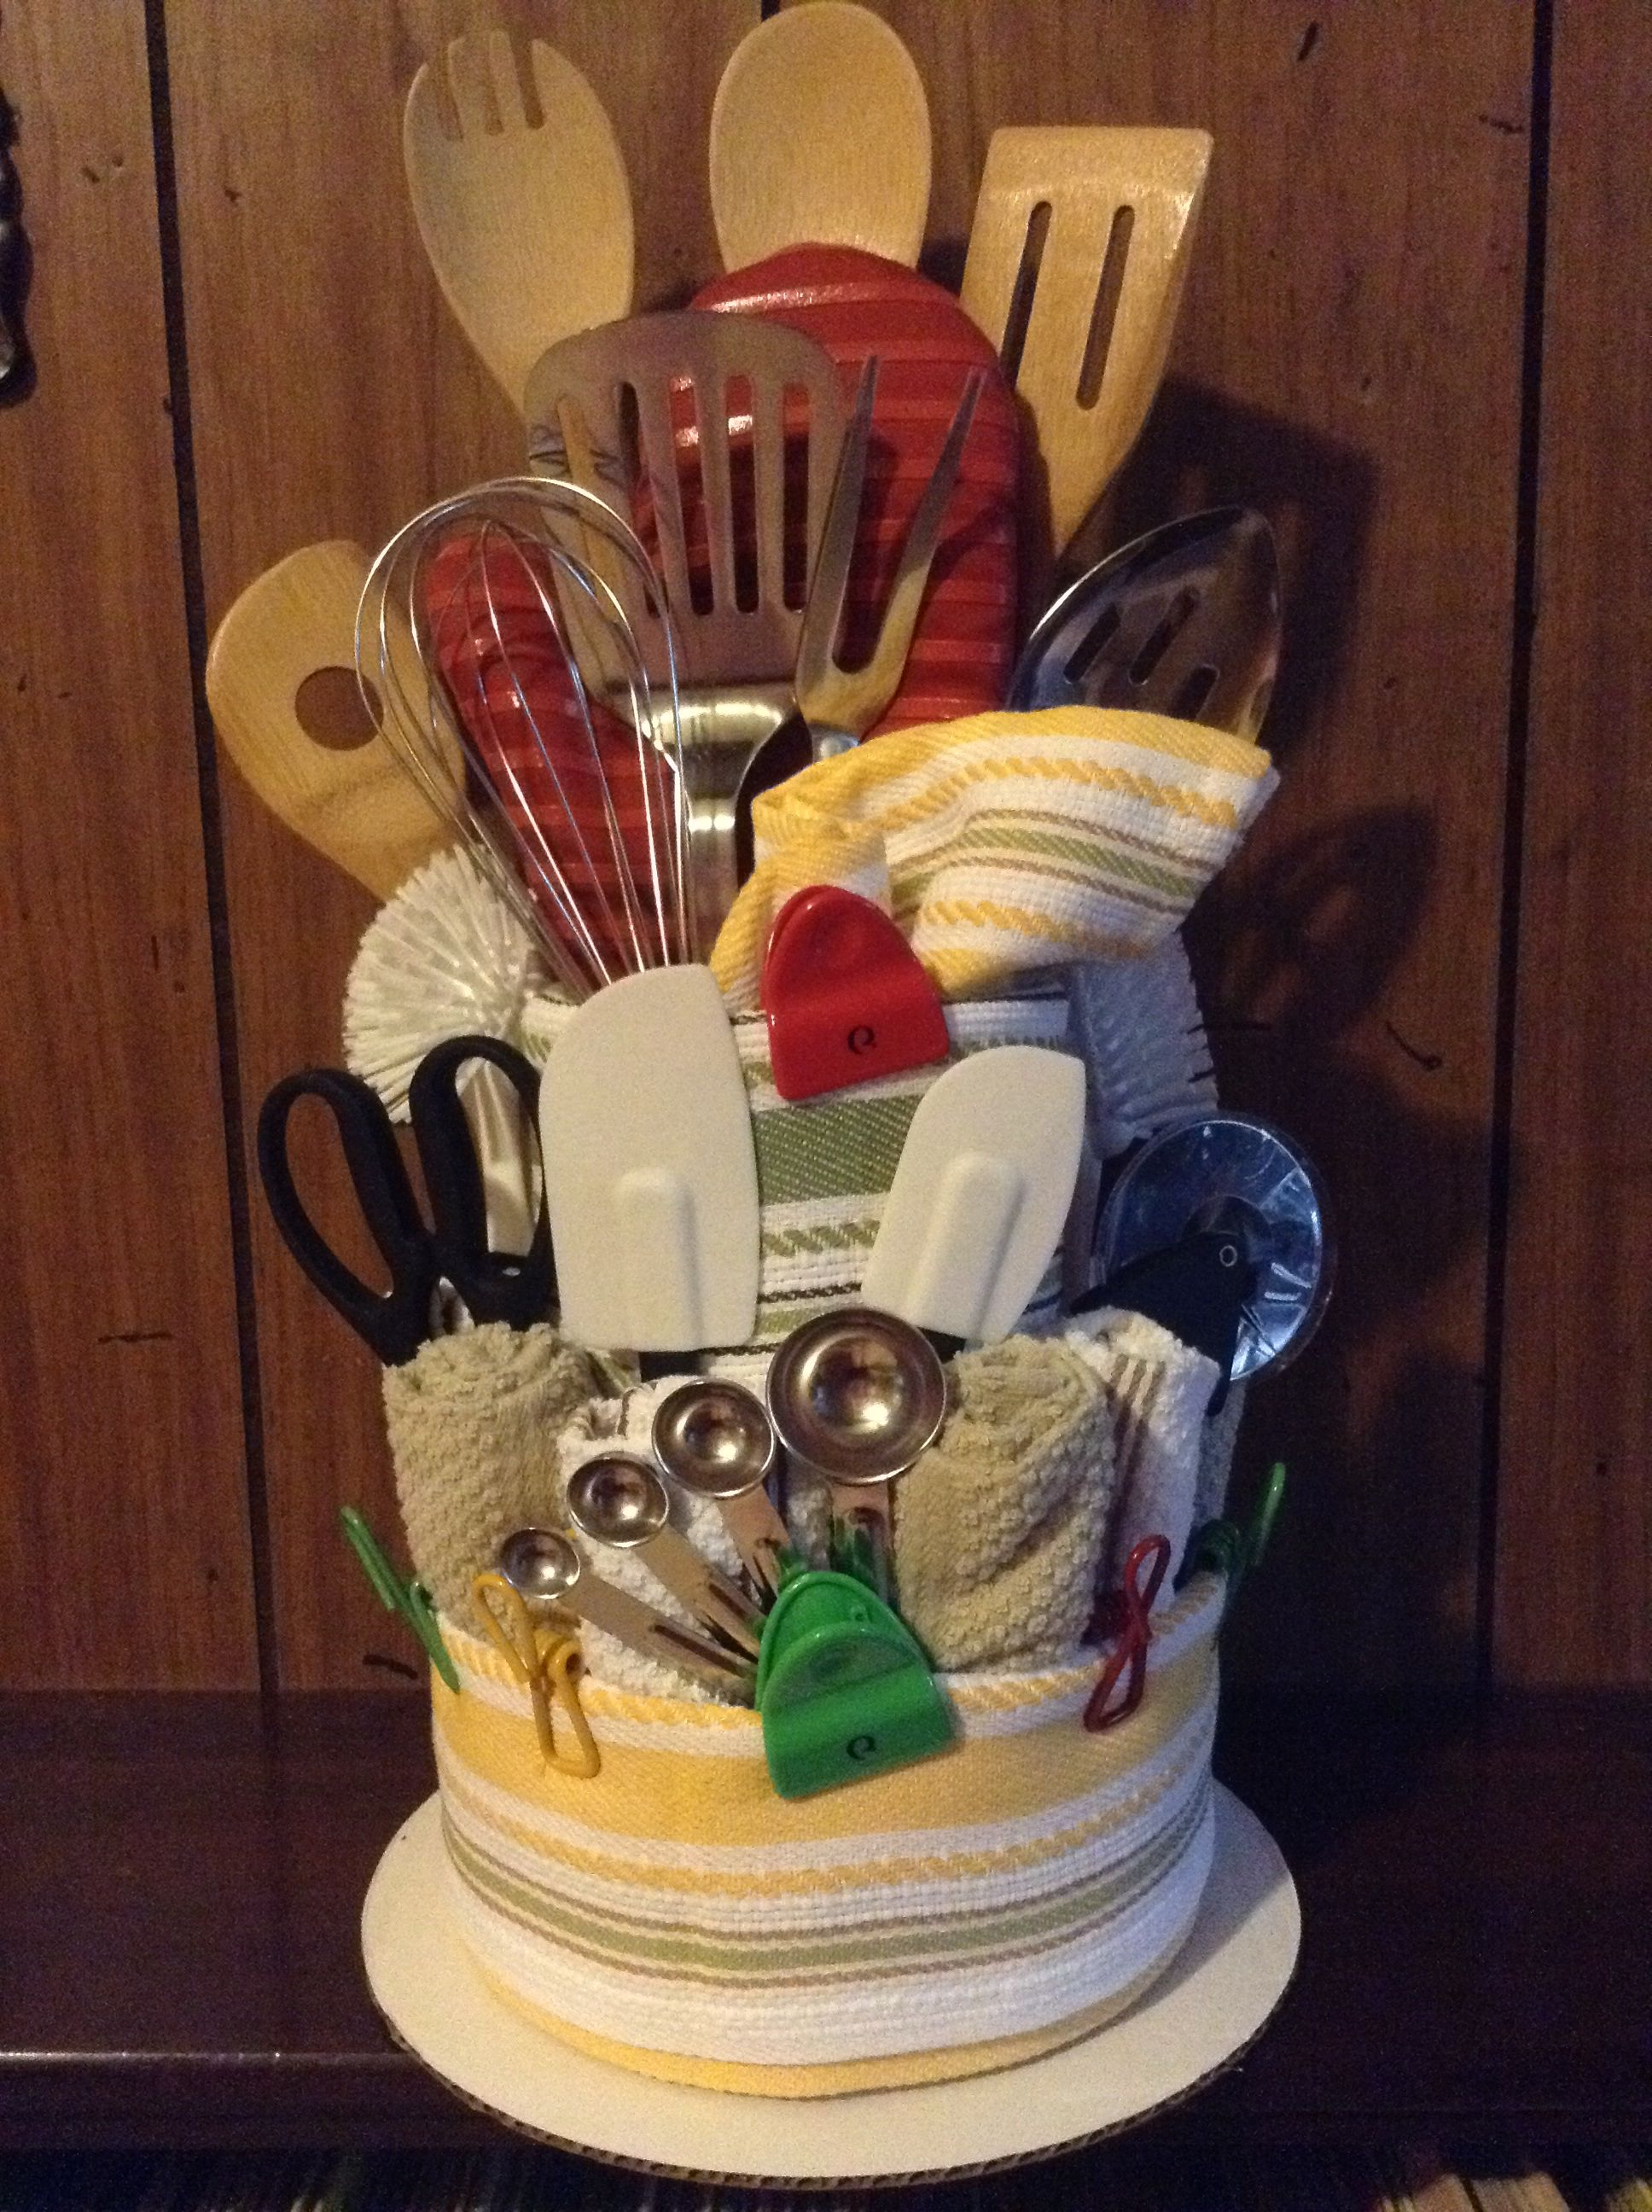 Gift For Kitchen Kitchen Dish Towel Cake My Mom And I Made As A Wedding Gift For A